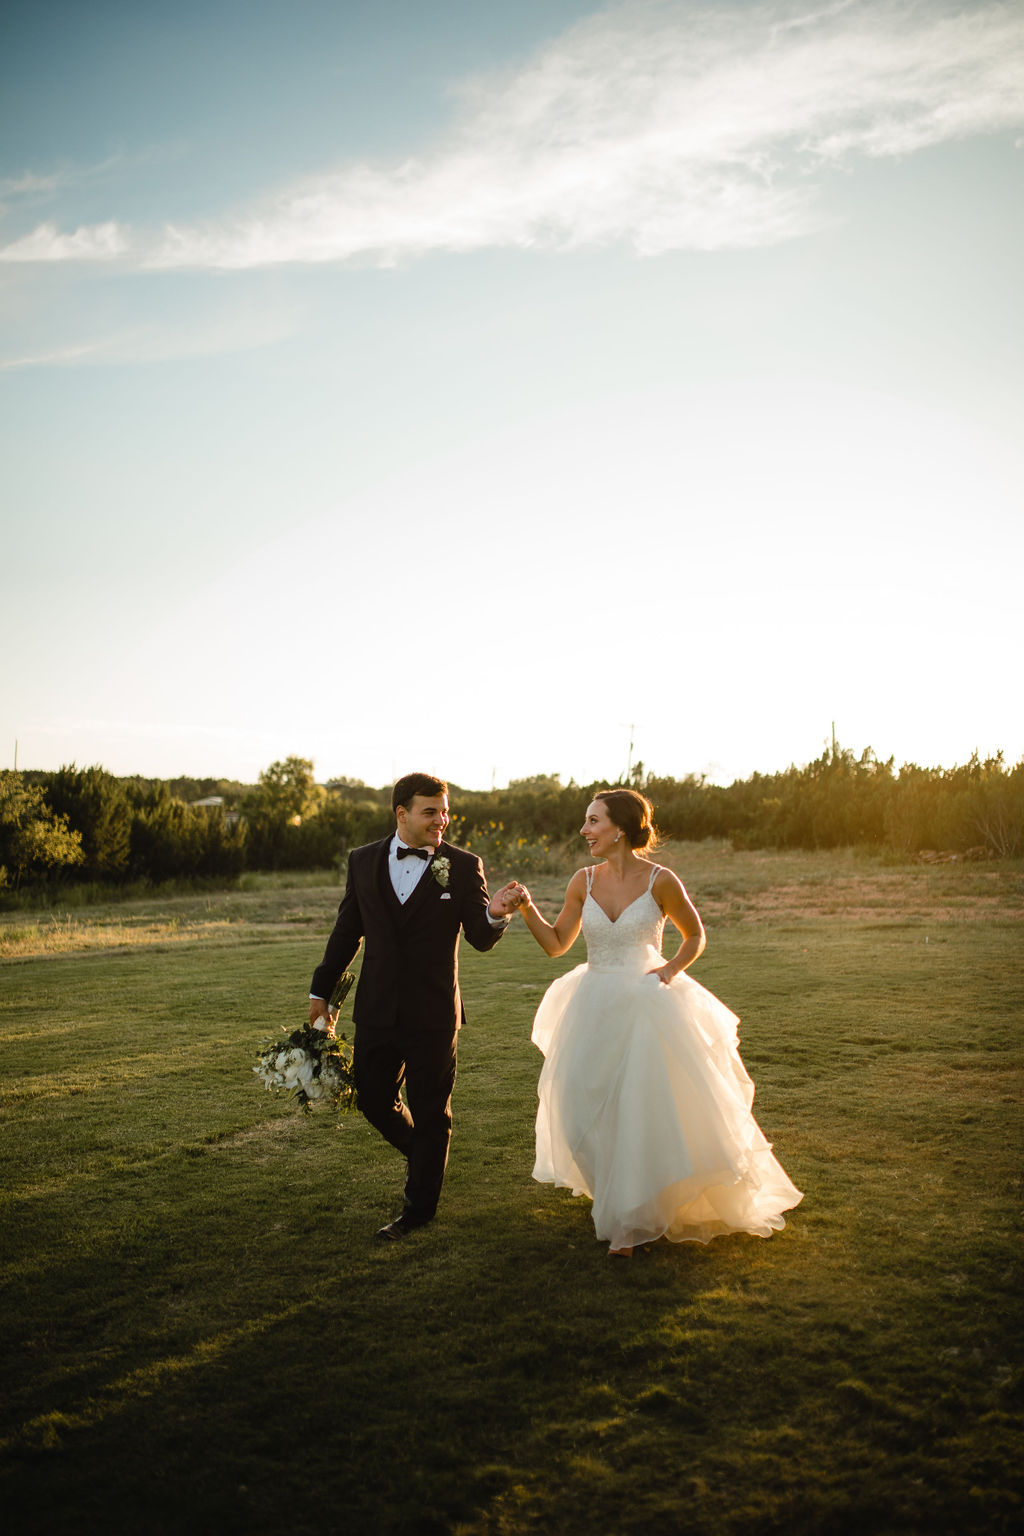 Golden hour wedding photo inspiration